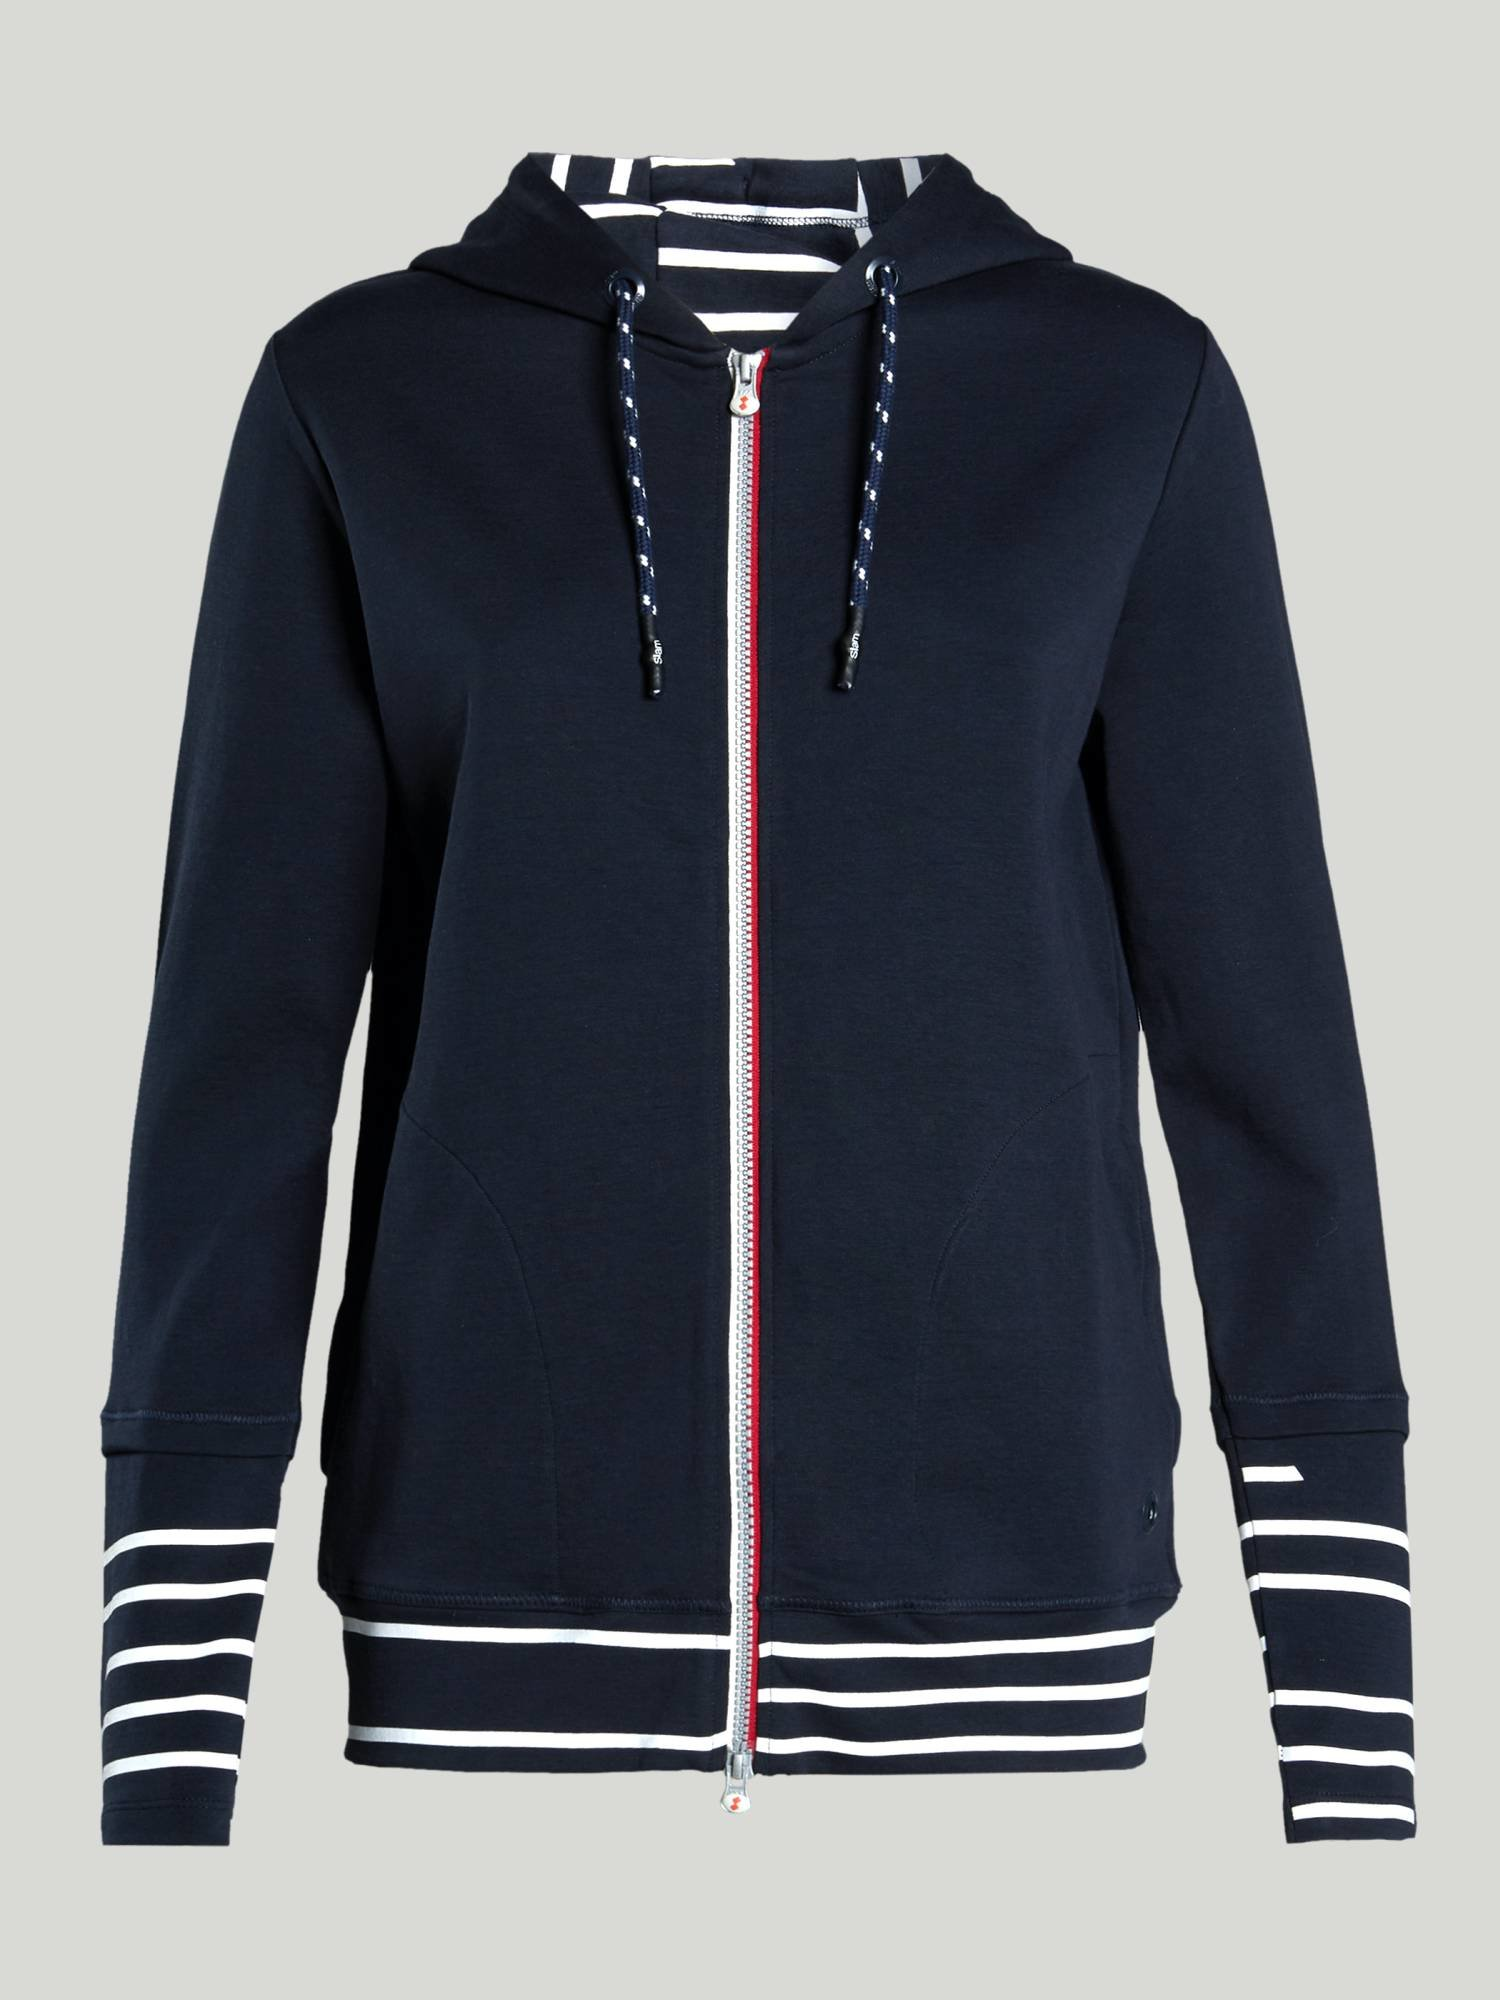 SWEATSHIRT A52 - Navy